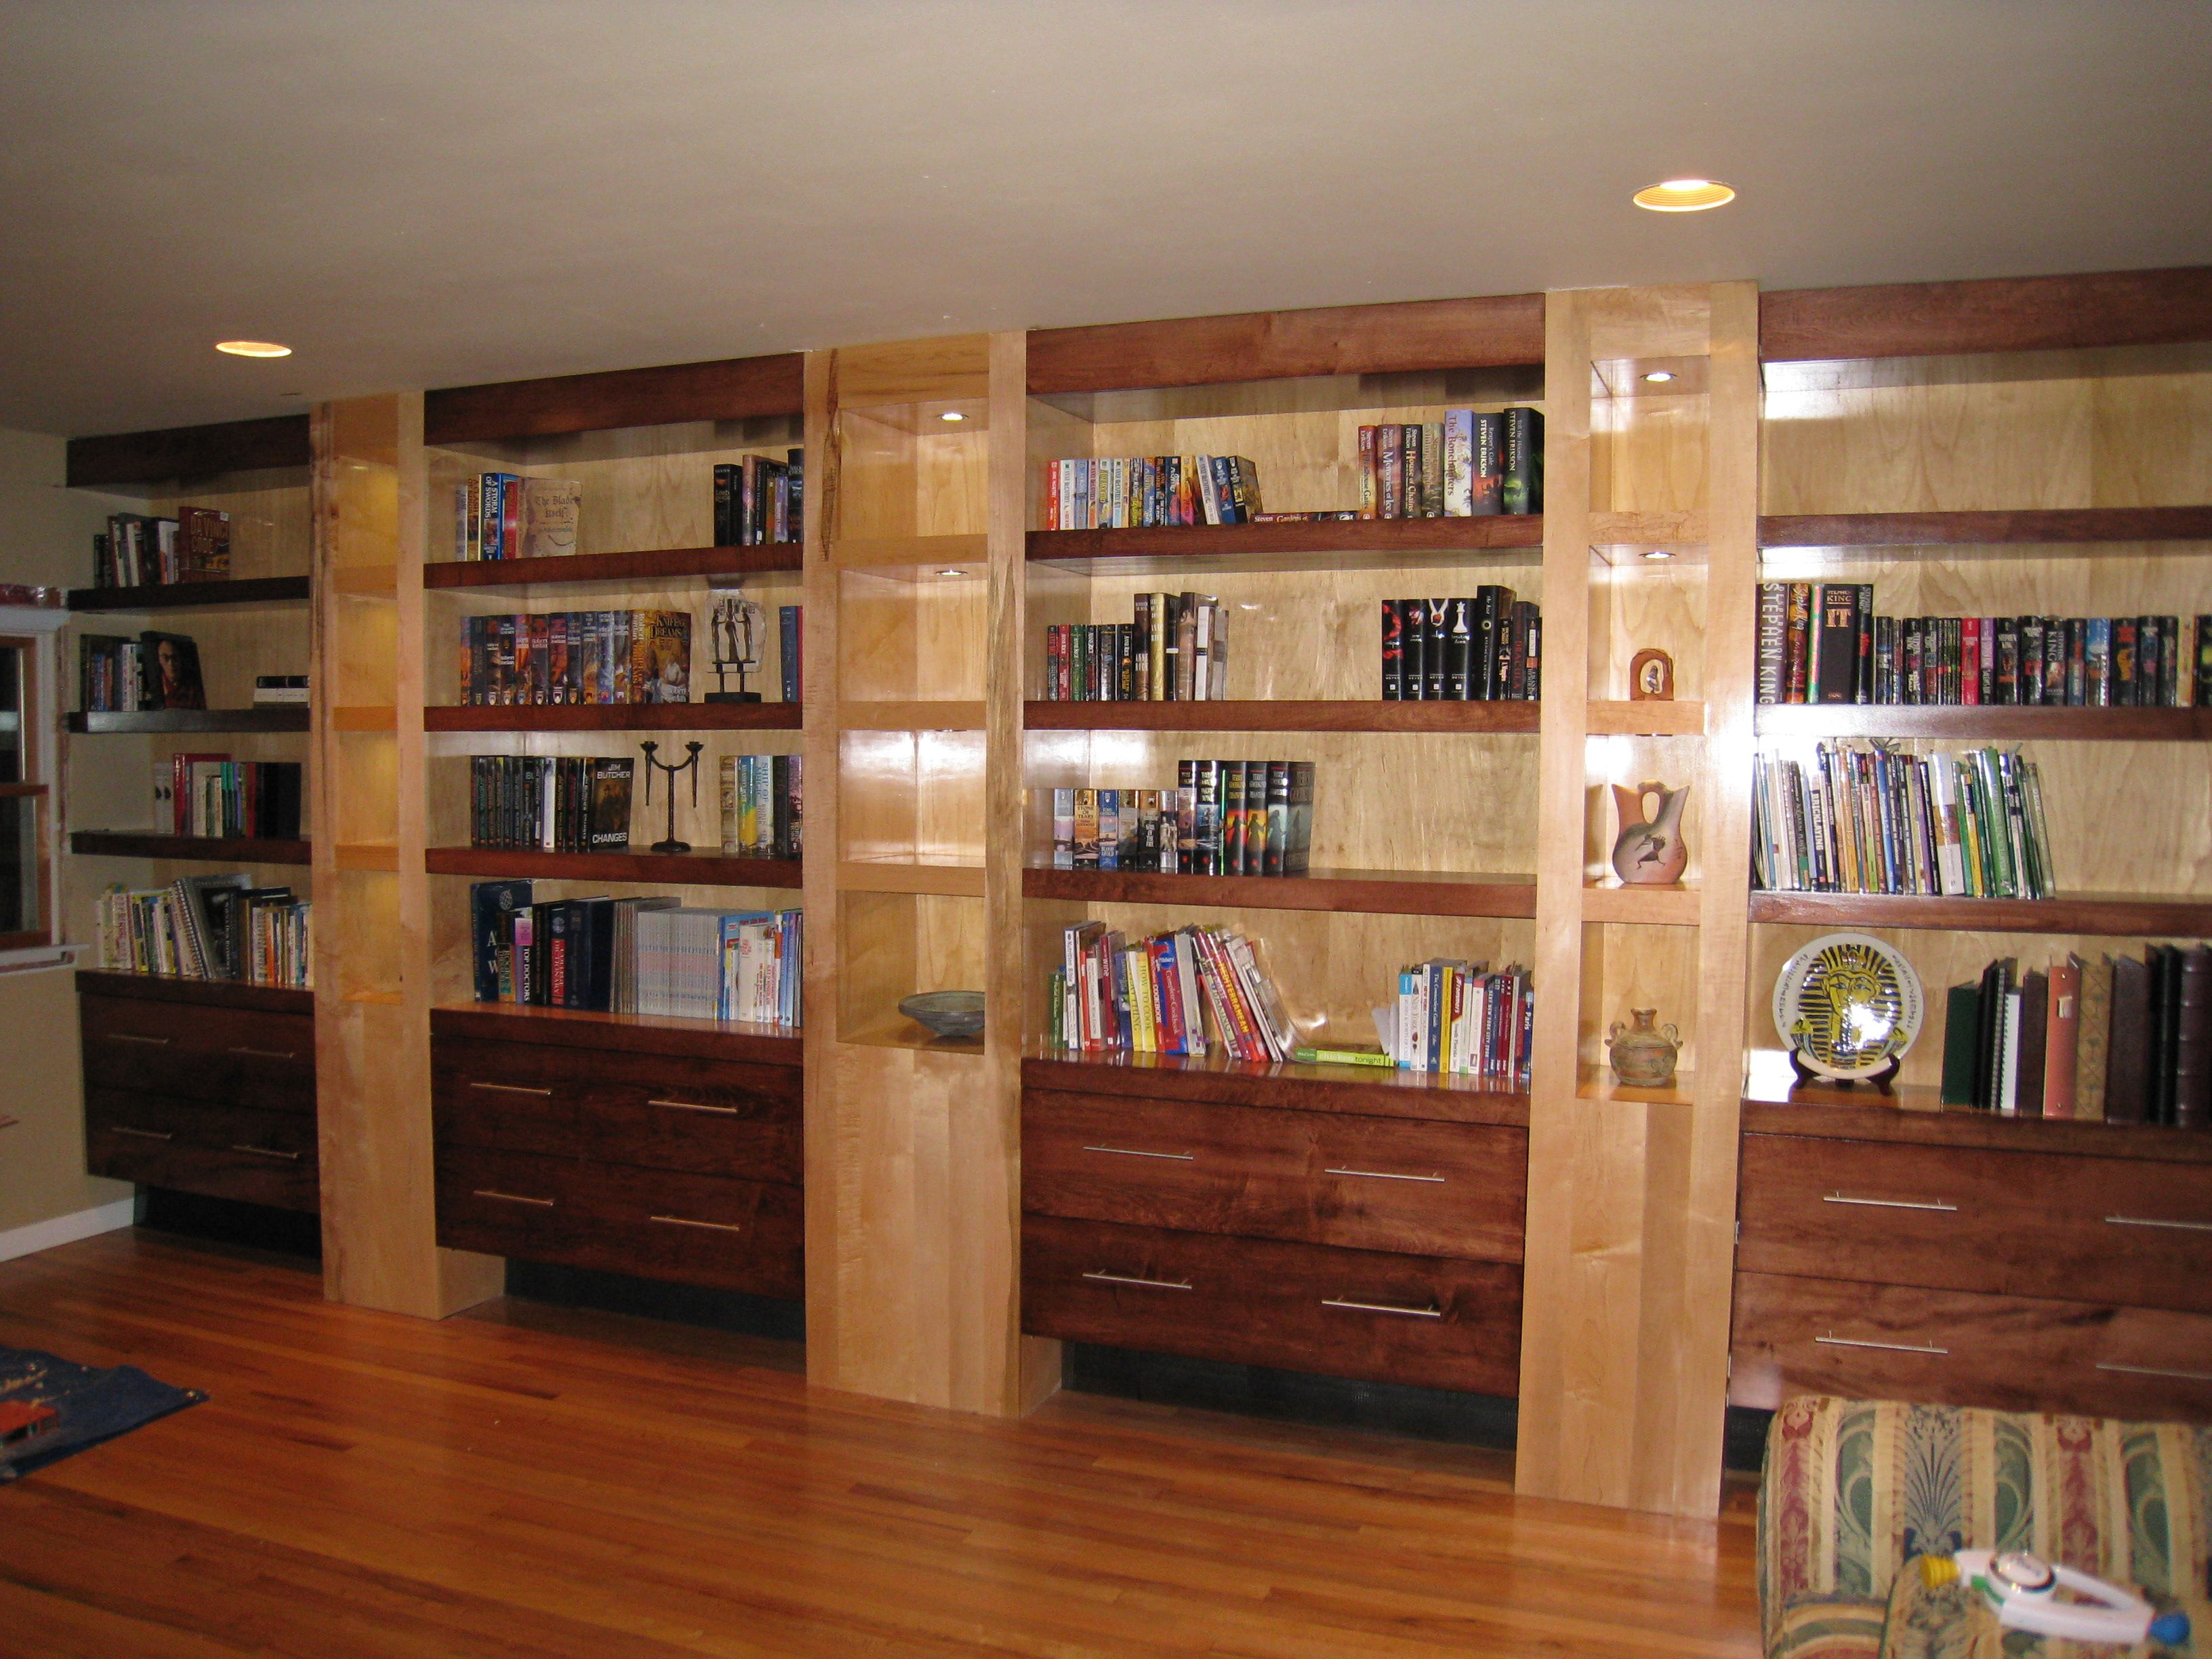 Pictures Of Built In Bookcases Built In Bookcases Built In Bookcase Kreg Jig Owners Community